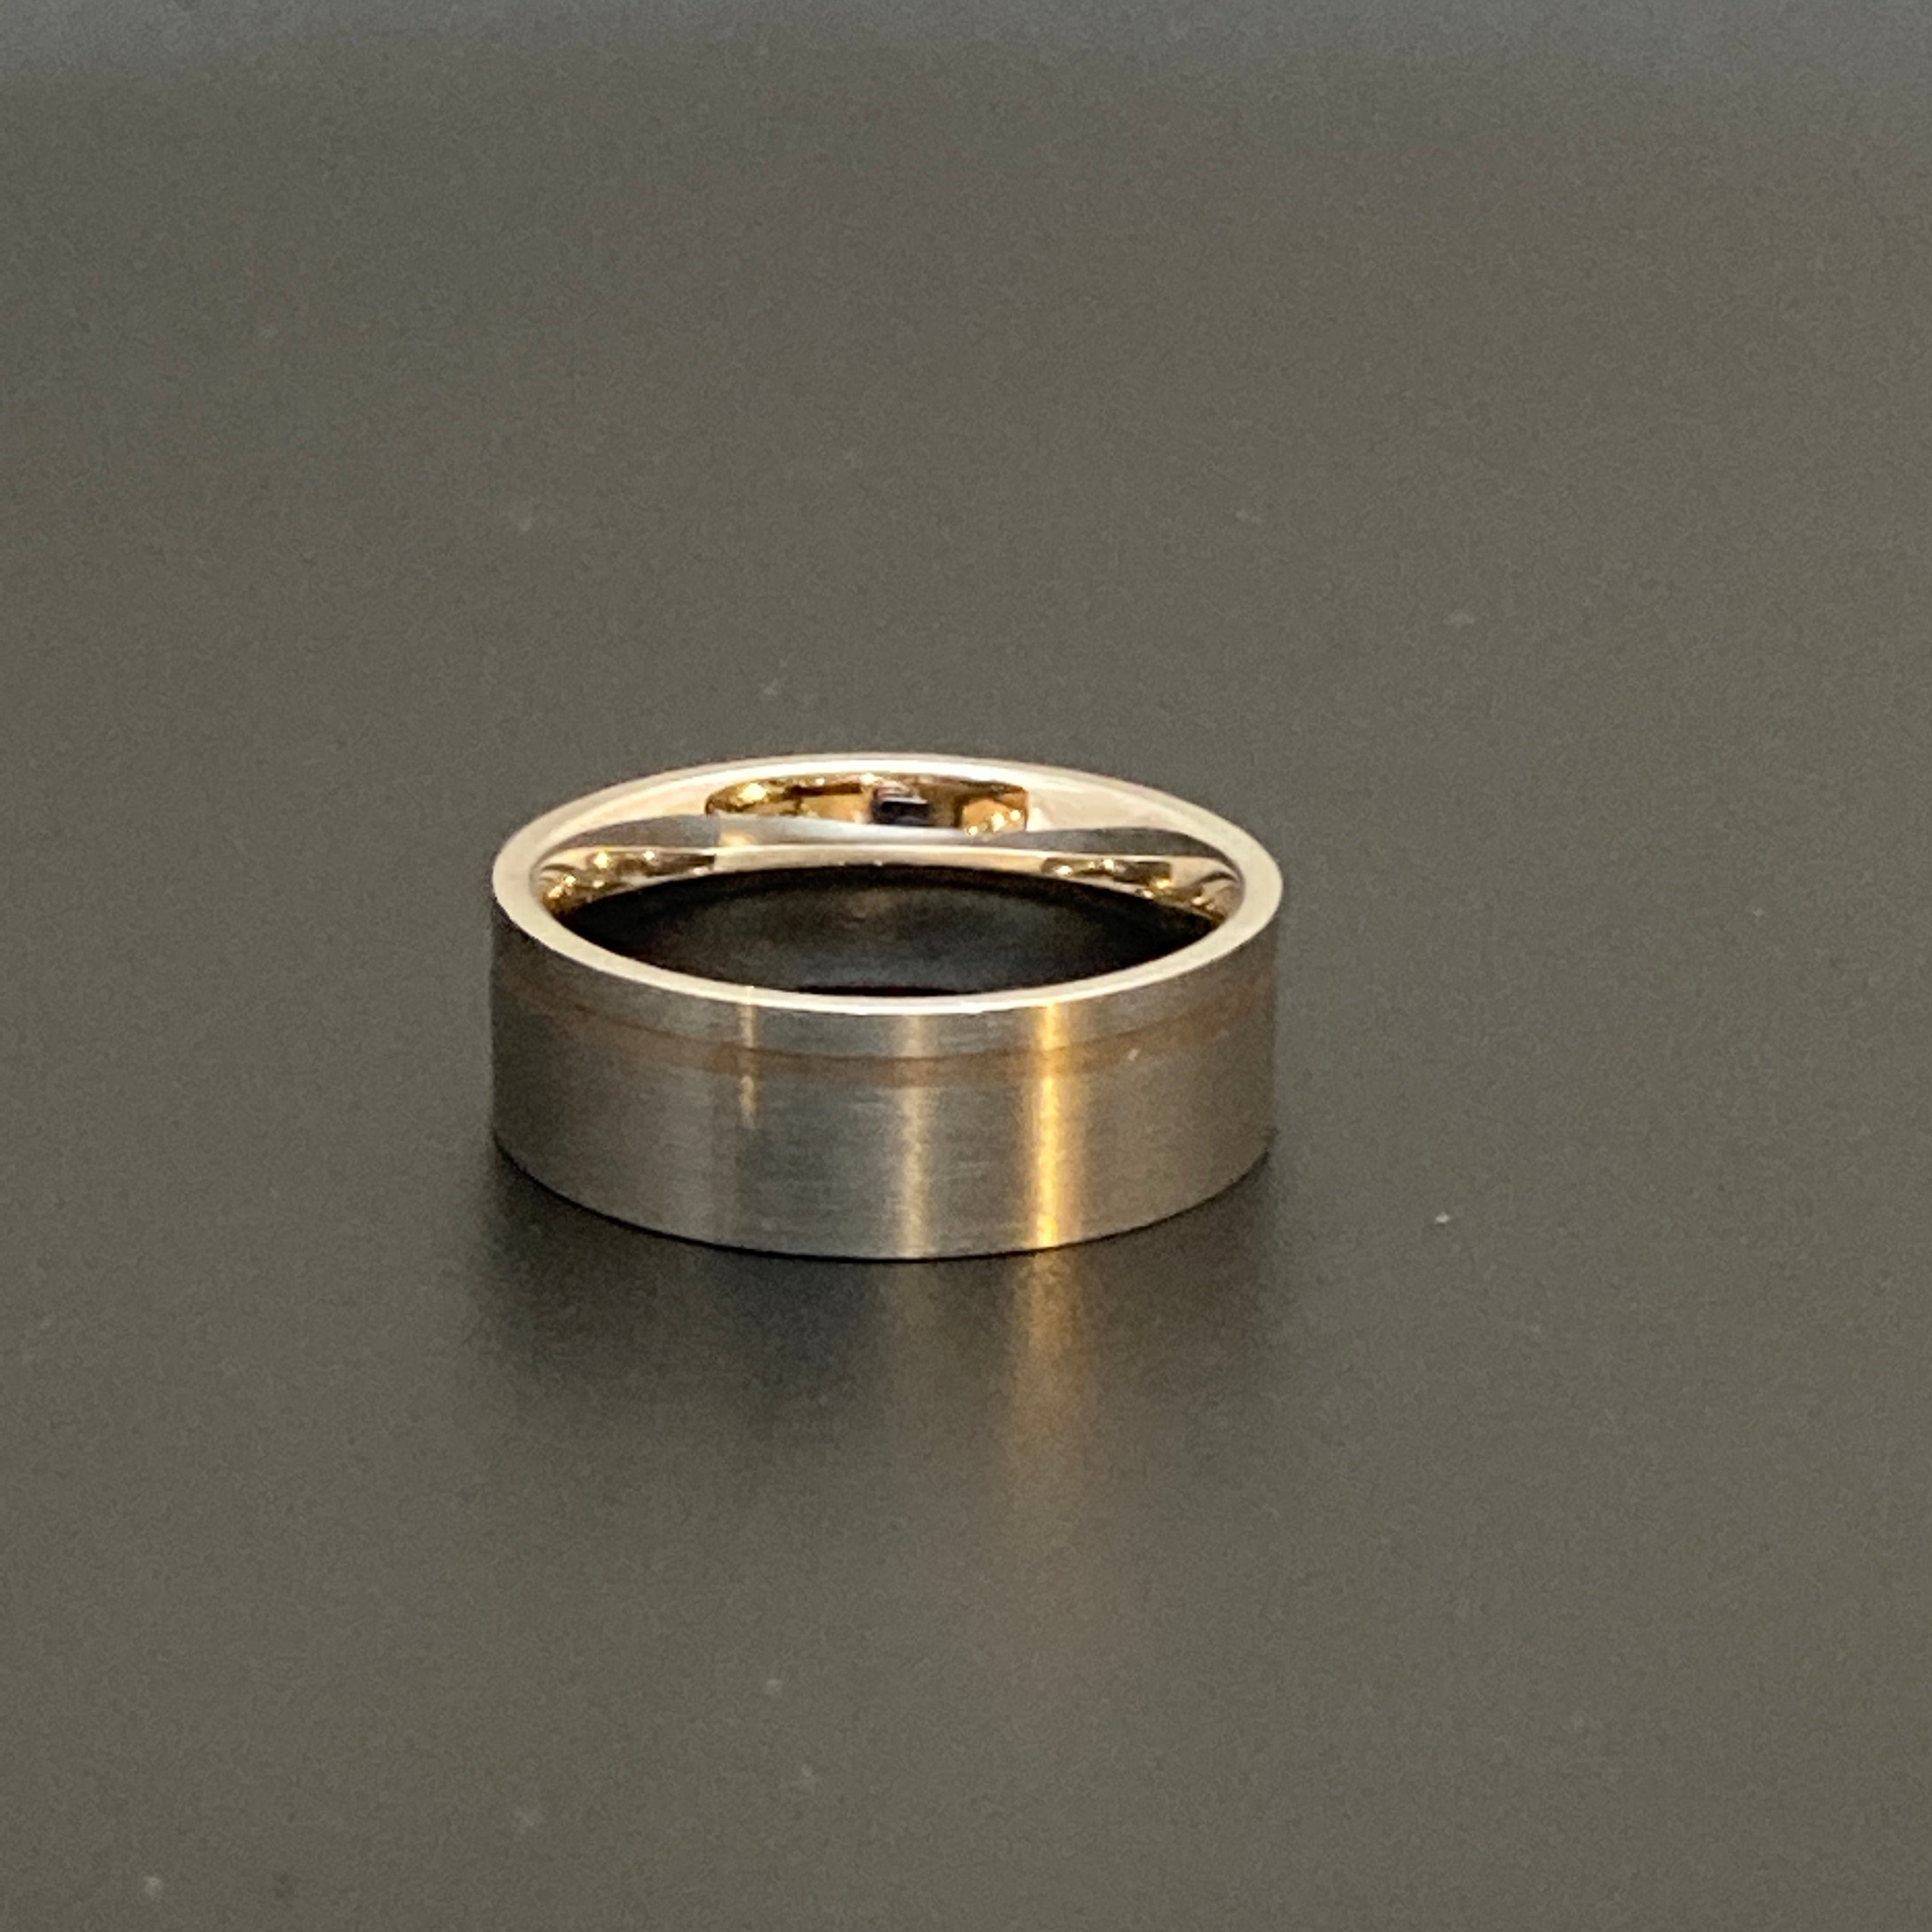 Steel & 18k Gold Band